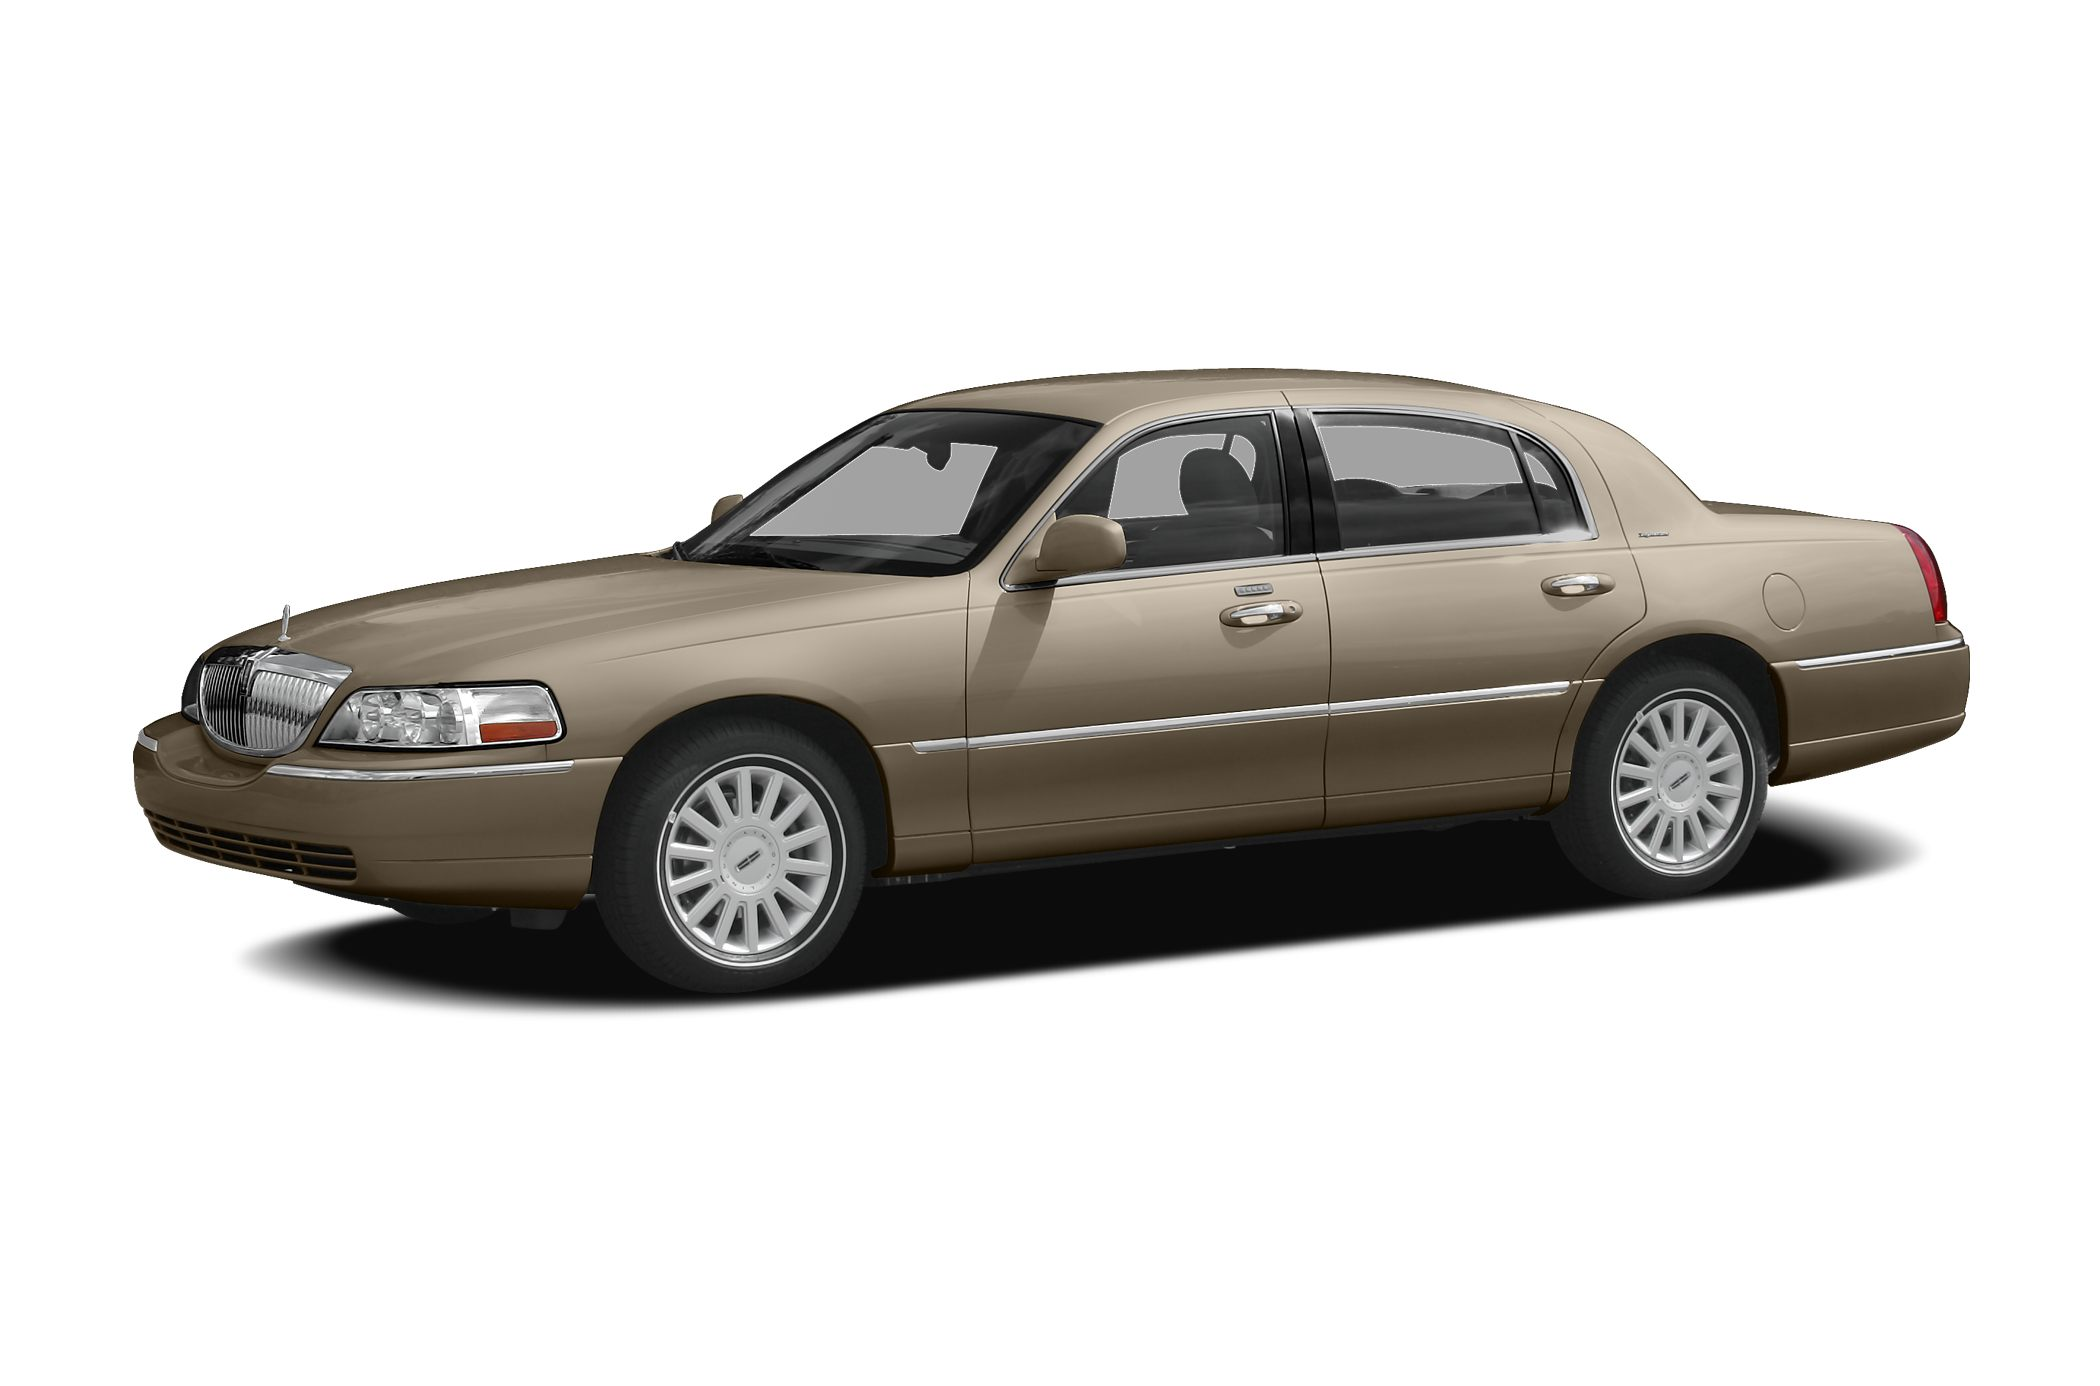 2009 Lincoln Town Car Signature Limited Sedan for sale in Hanover for $17,995 with 44,567 miles